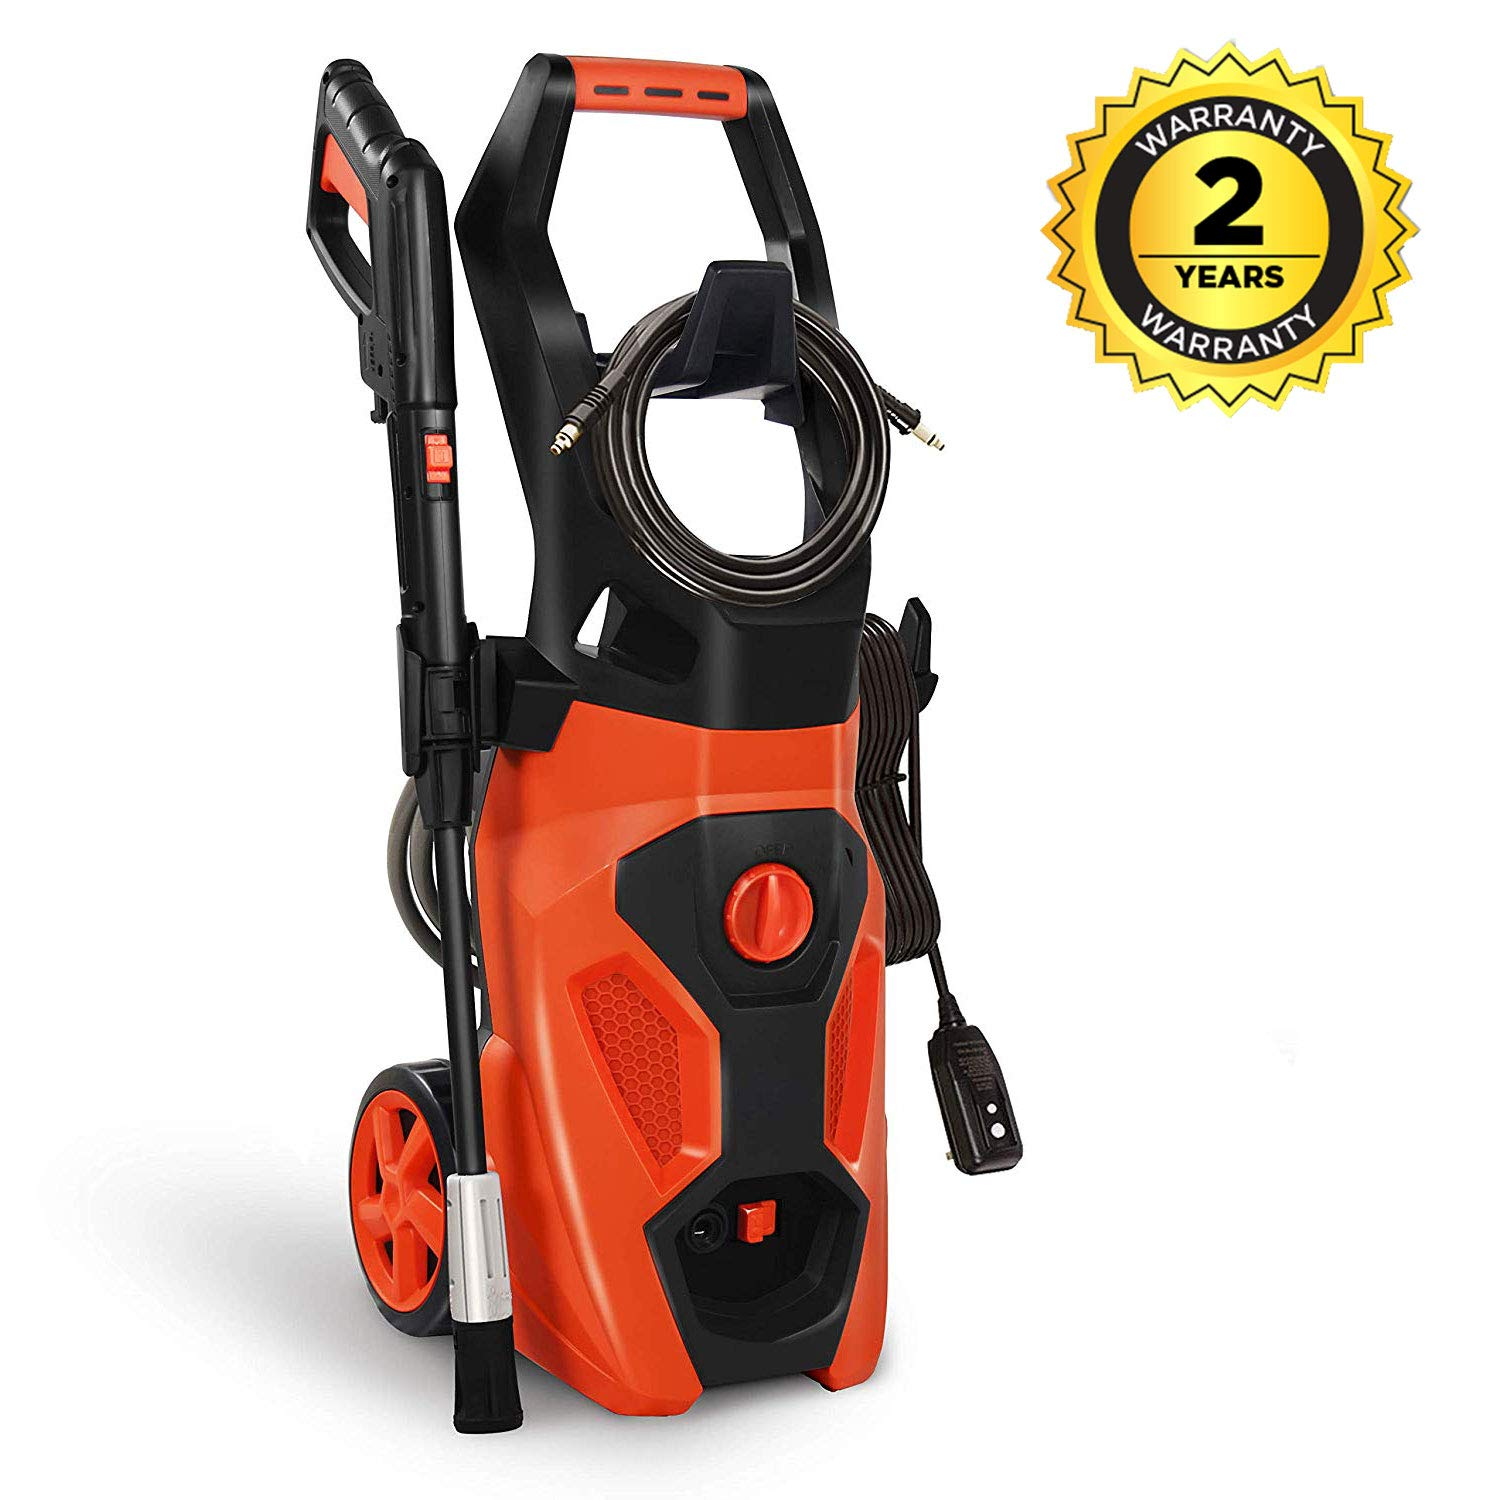 Cozylifeunion Electric Pressure Washer, 2100 PSI 1.8 GPM Car Power High Pressure Cleaner Machine with Spray Gun, Spray Brush, Adjustable Nozzles and 26ft High Pressure Hose